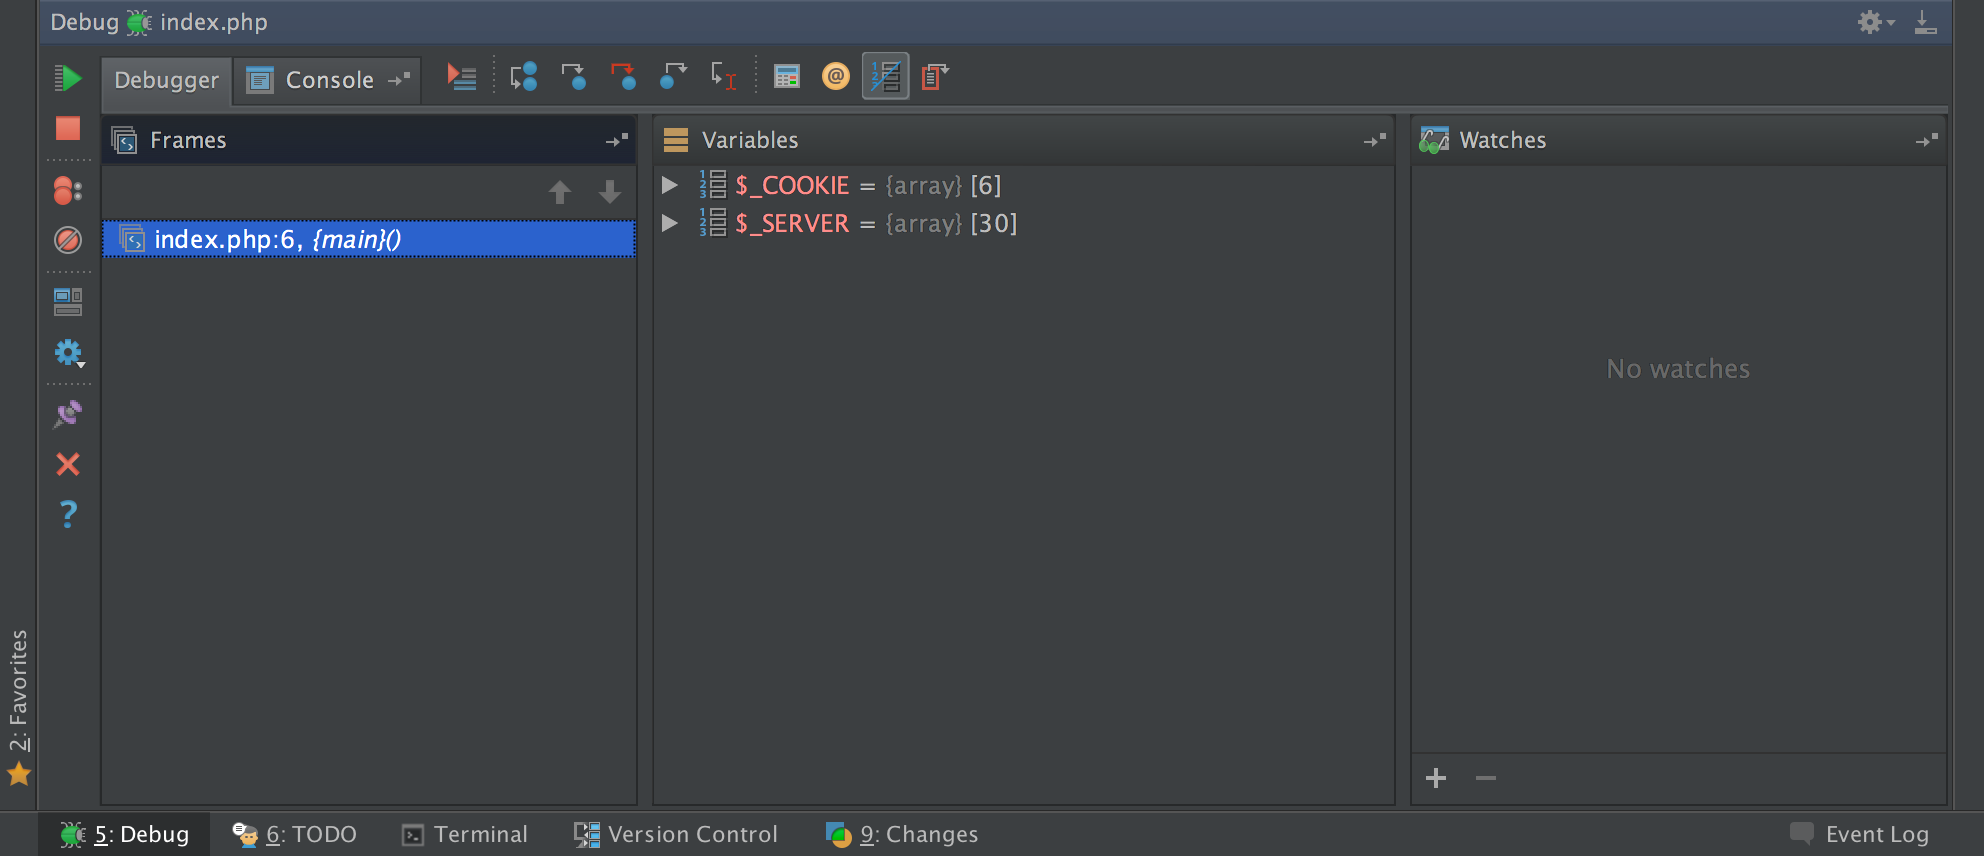 Figure 6: Debugging Interface in PHP Storm